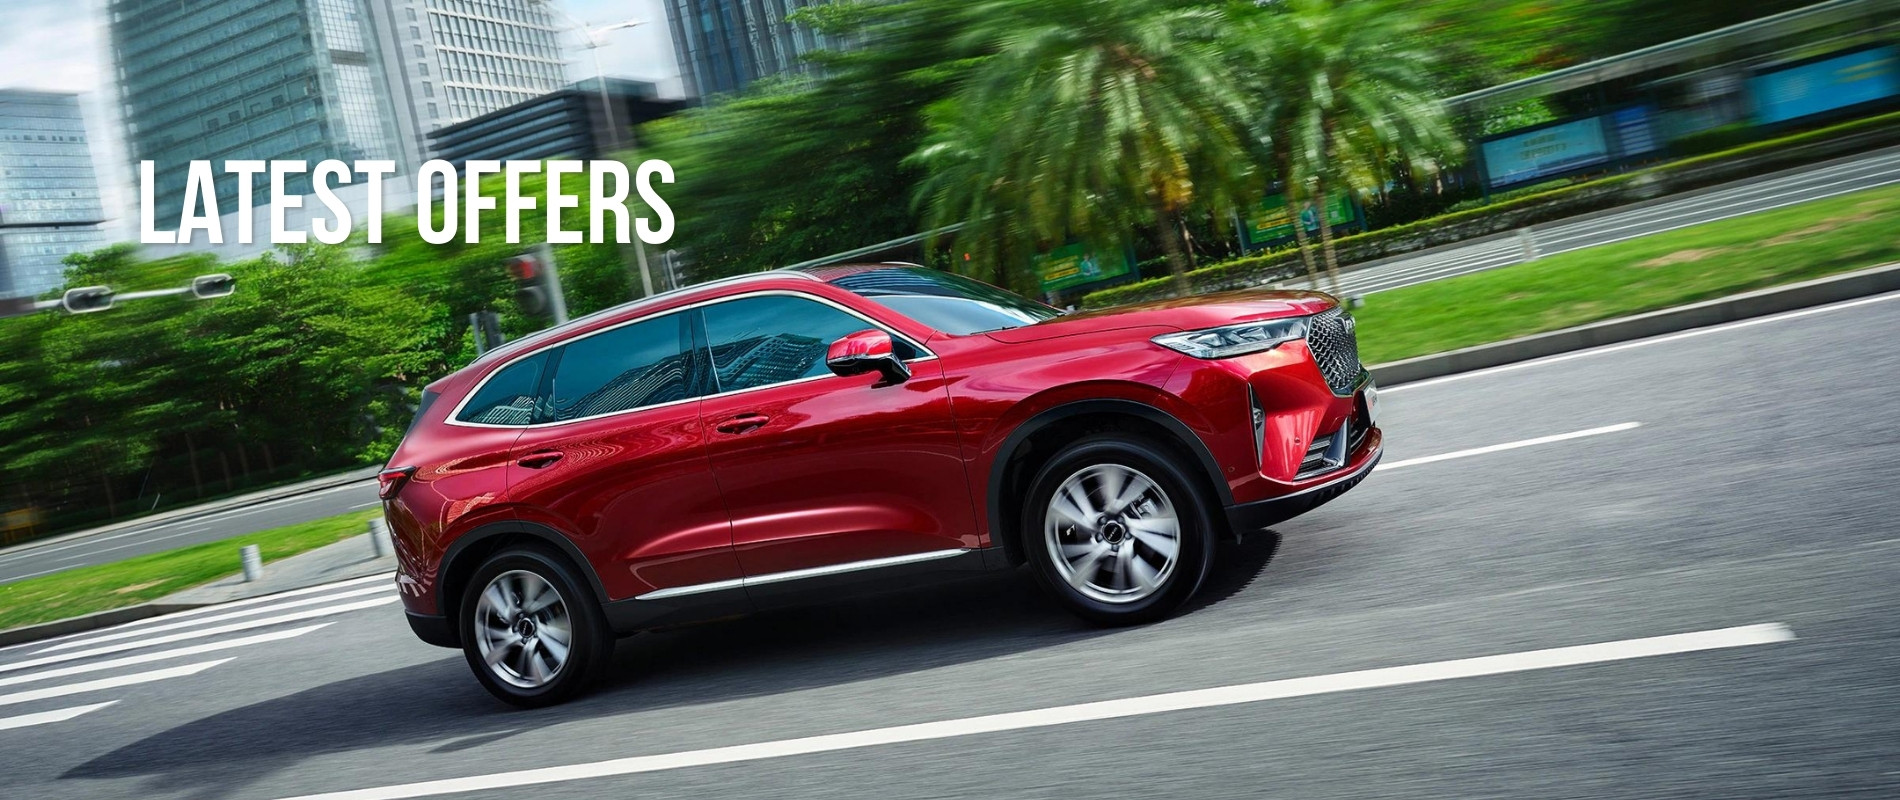 GWM Haval Offers and Specials